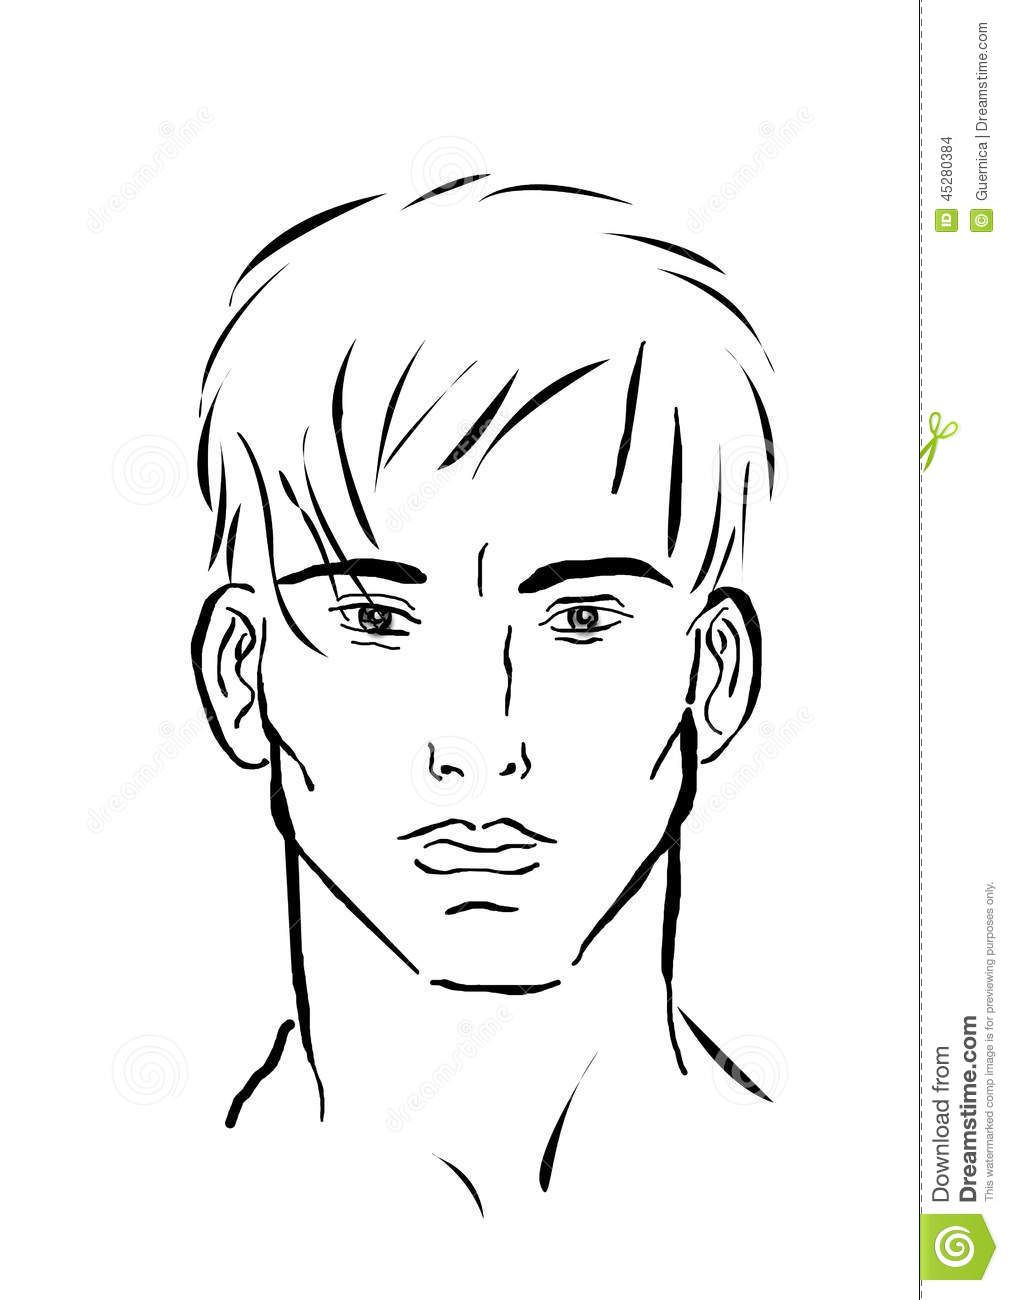 Simple Sketched Faces Google Search Boy Face Realistic Sketch Face